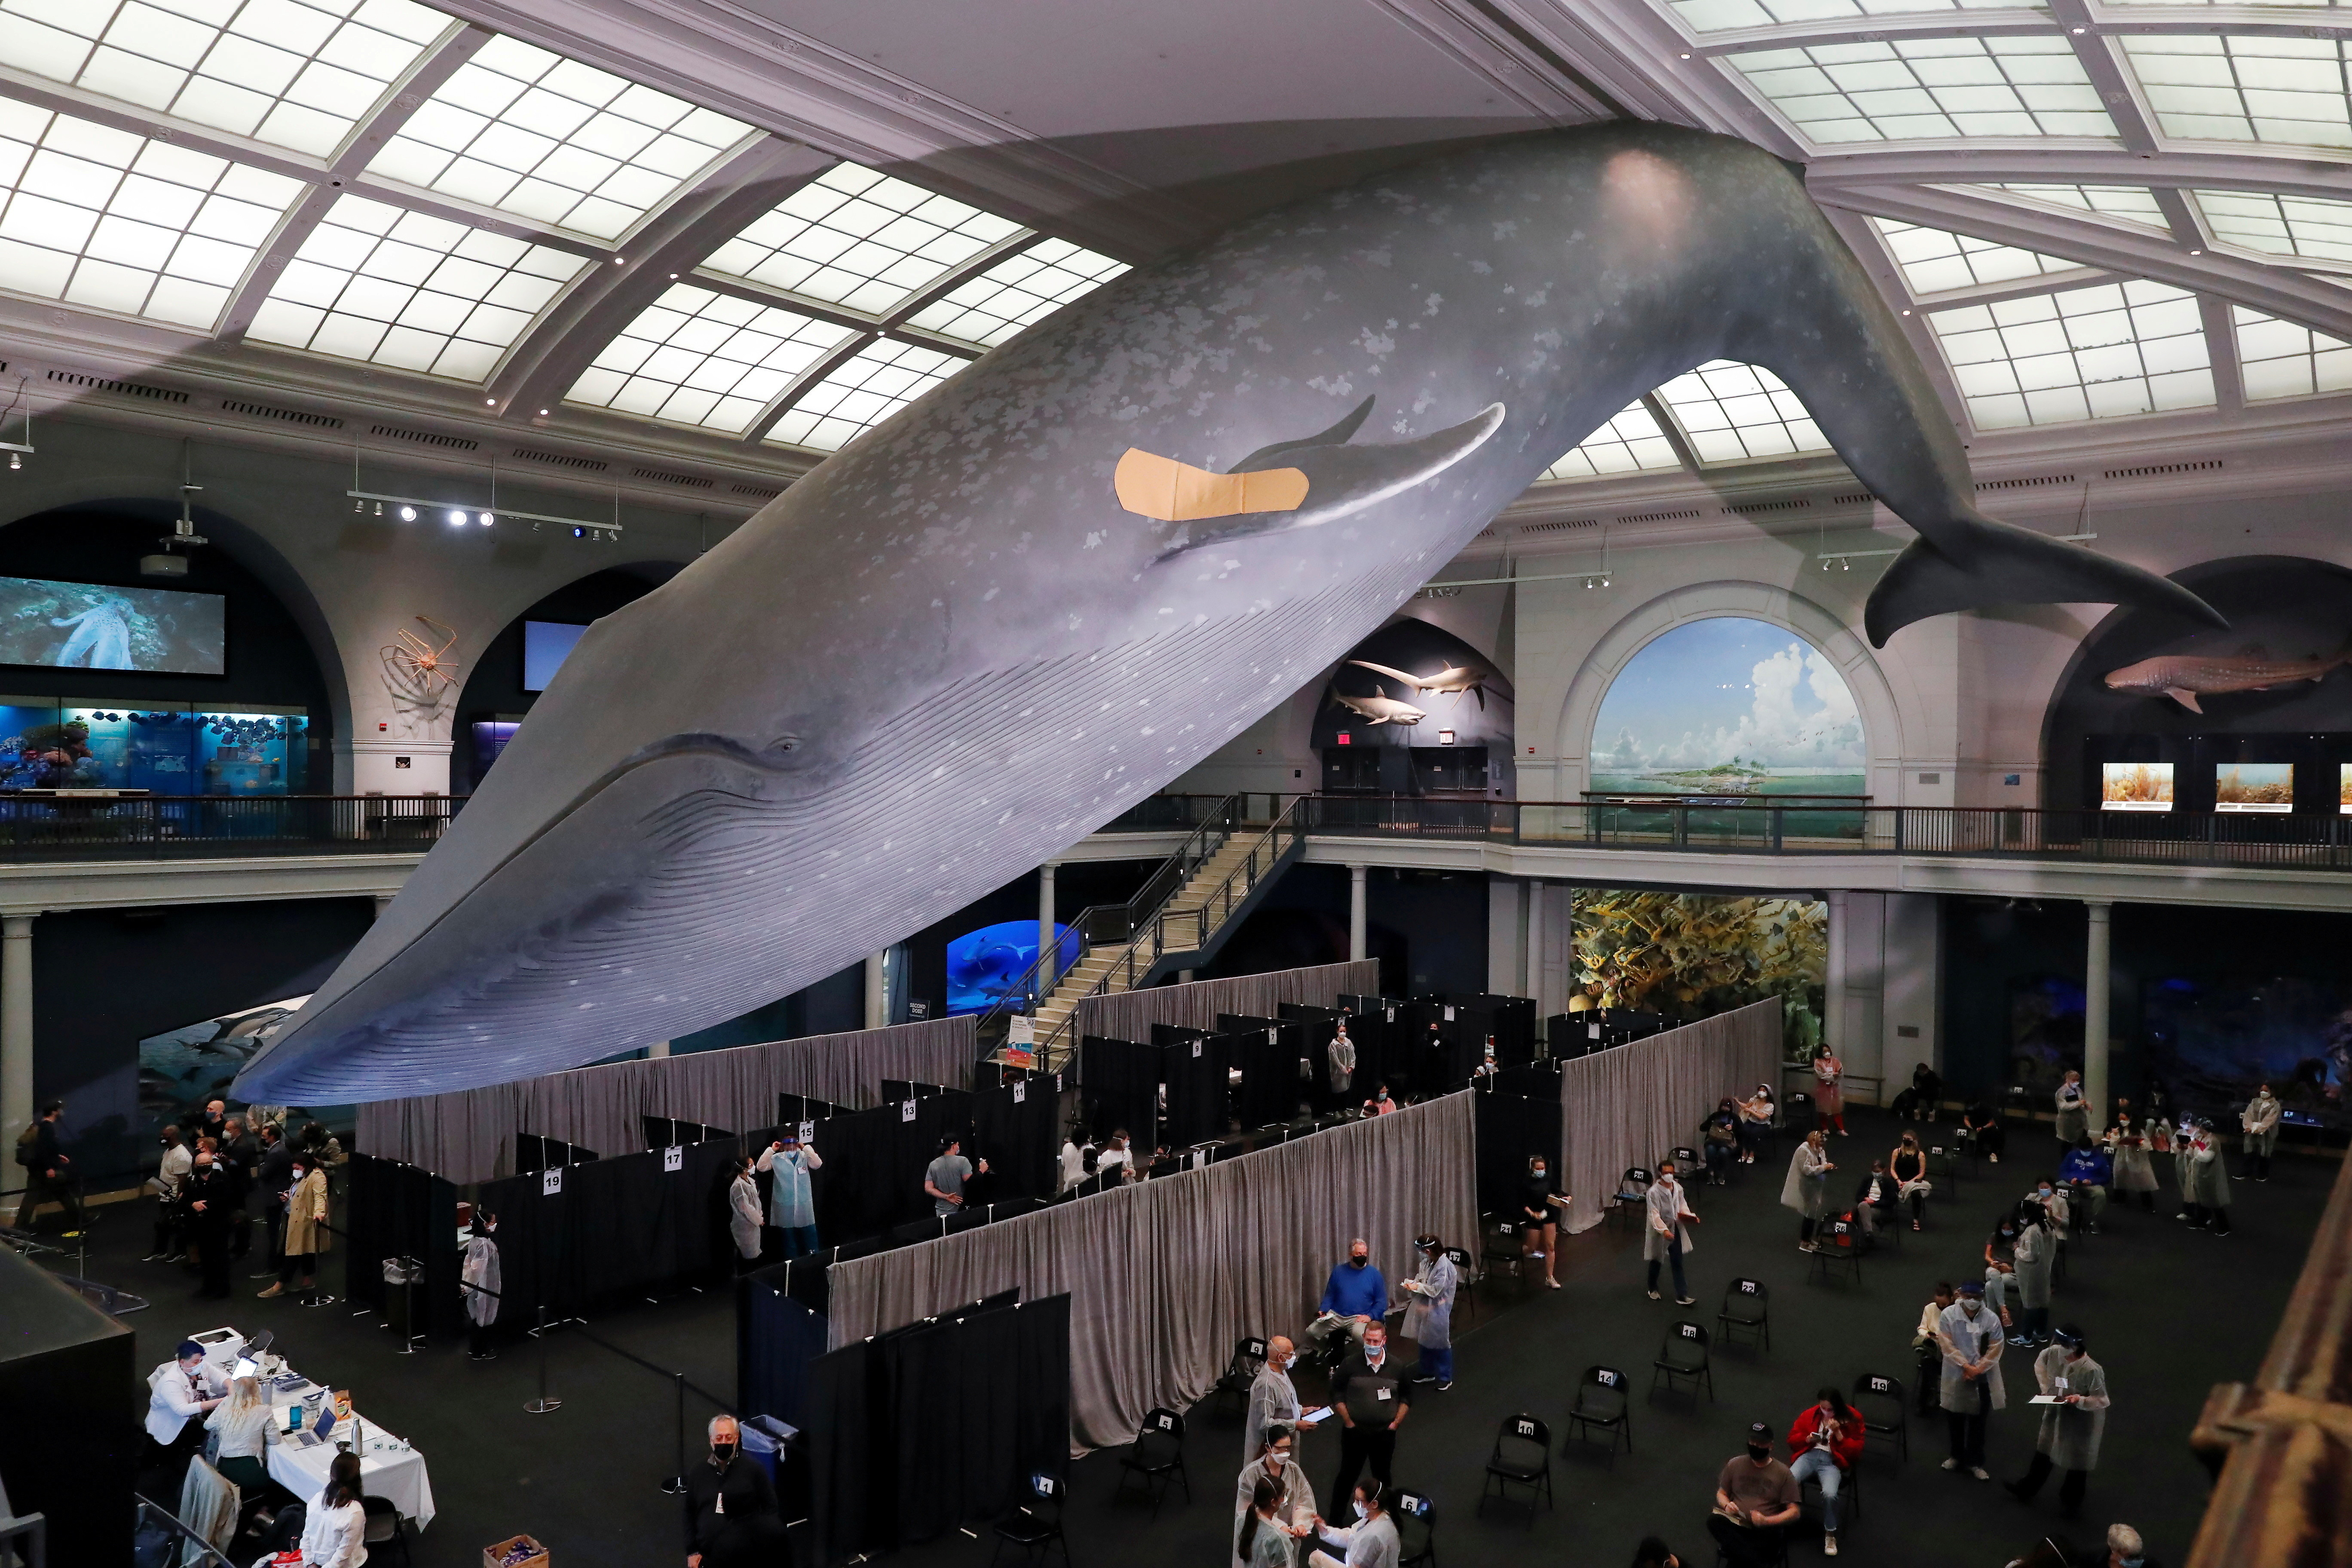 A blue whale model hangs with a band aid on its fin above a pop up vaccination site at the American Museum of Natural History in New York City, U.S., April 23, 2021. REUTERS/Shannon Stapleton     TPX IMAGES OF THE DAY - RC2T1N9ET247